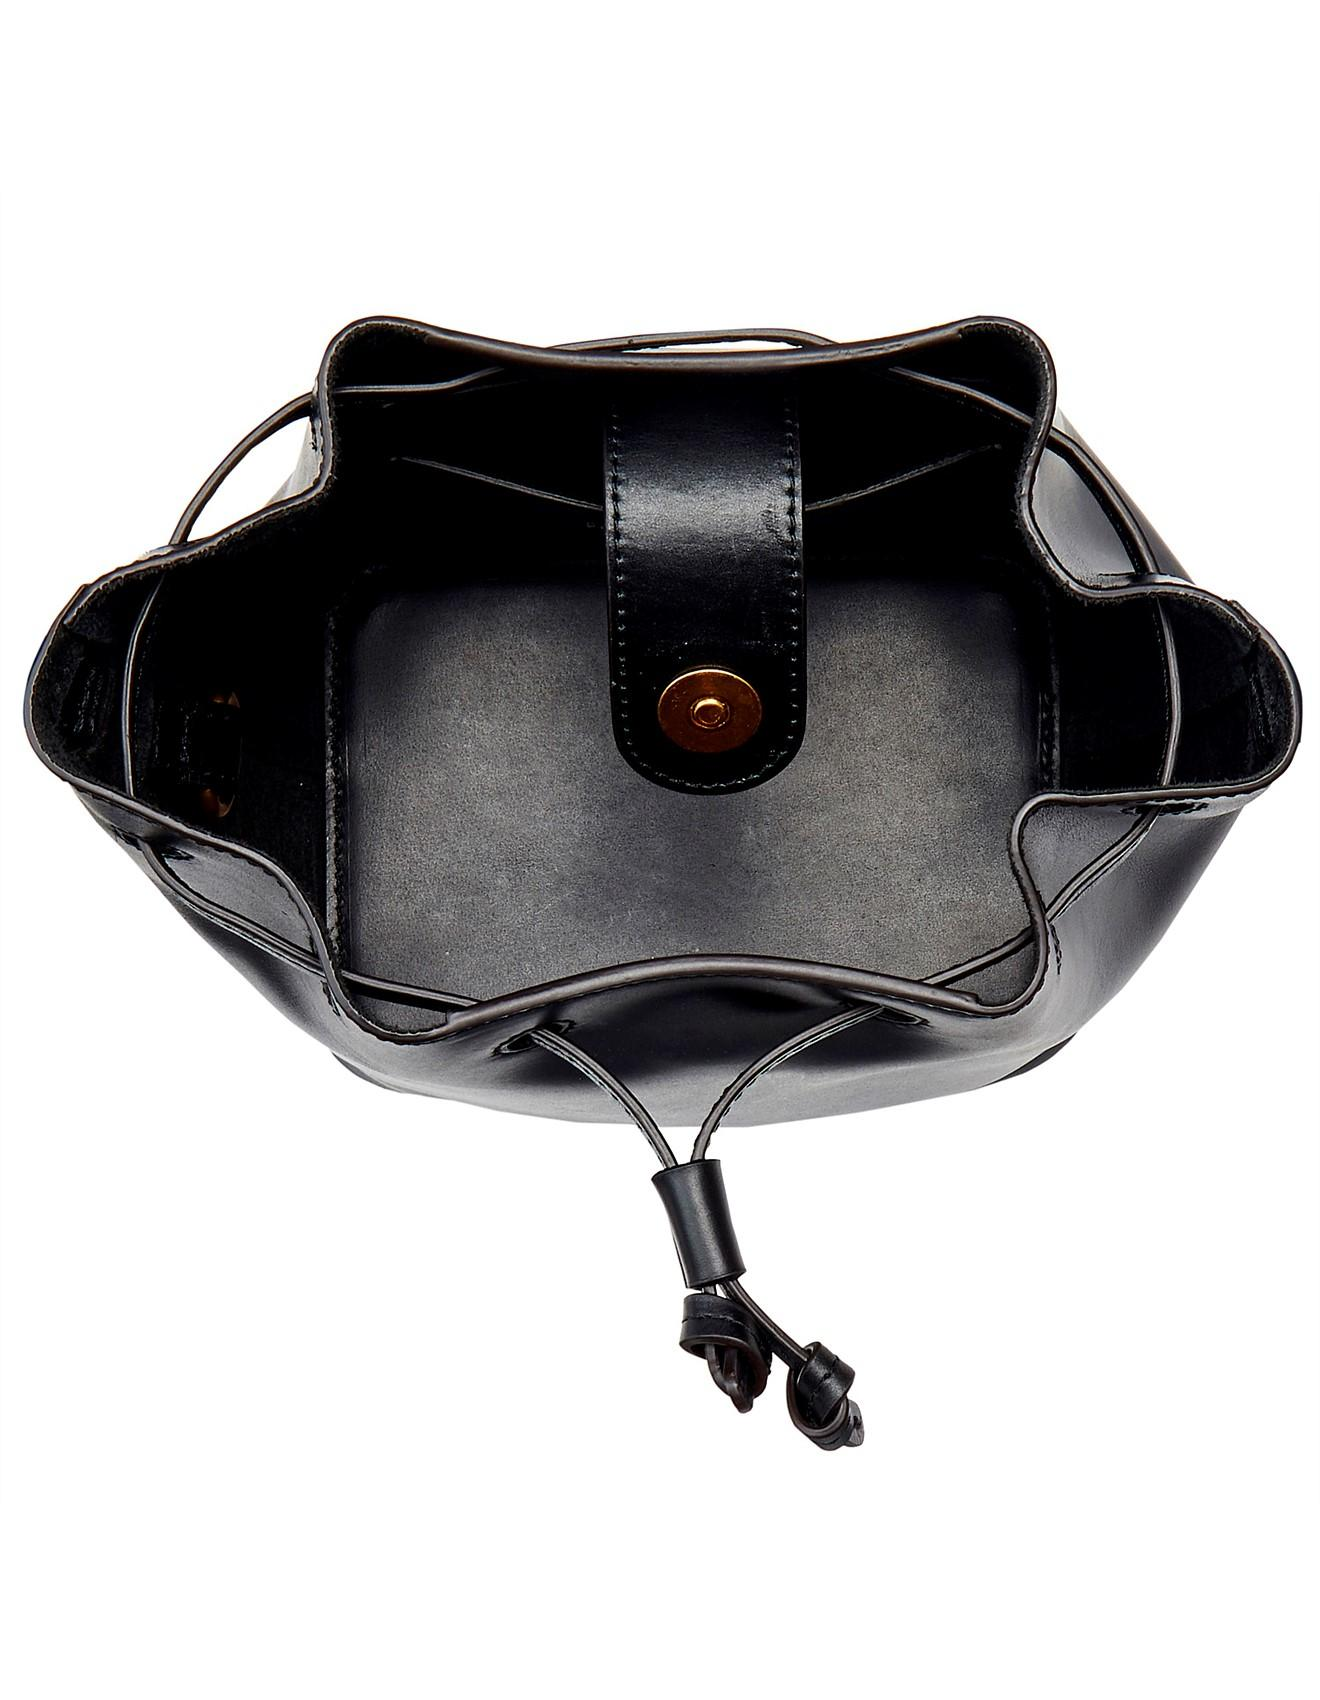 e57bc9ef1e7a Oroton Escape Mini Bucket Bag in Black - Lyst